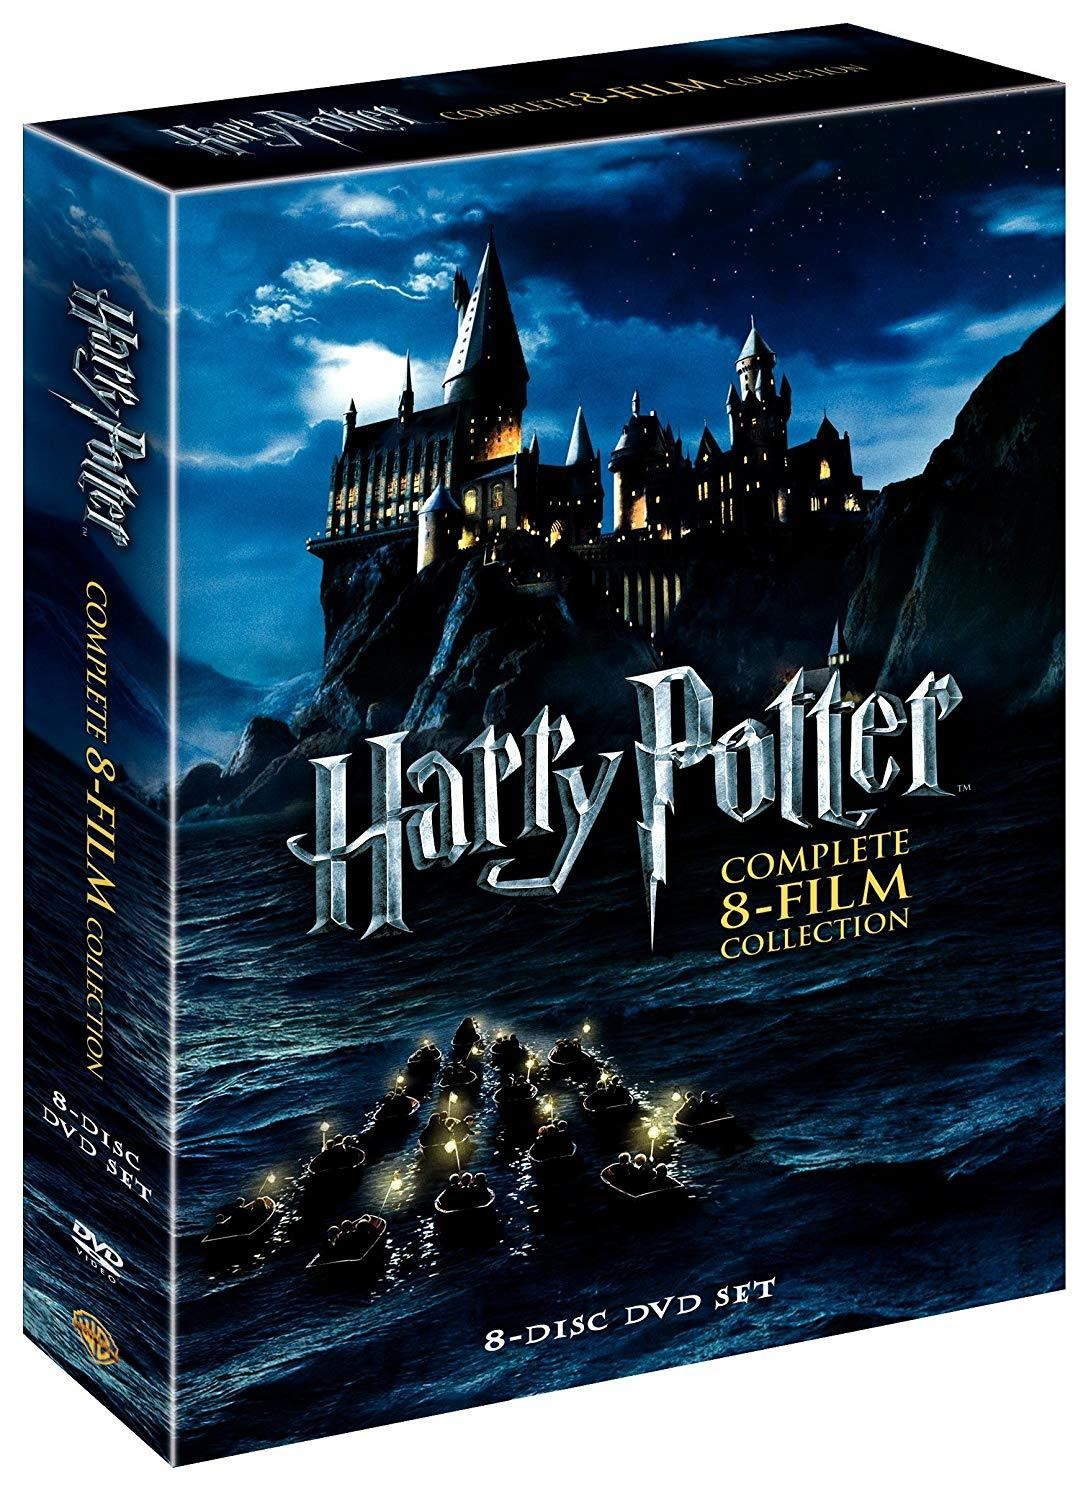 Harry Potter Products From Amazon You Didn't Know You Need